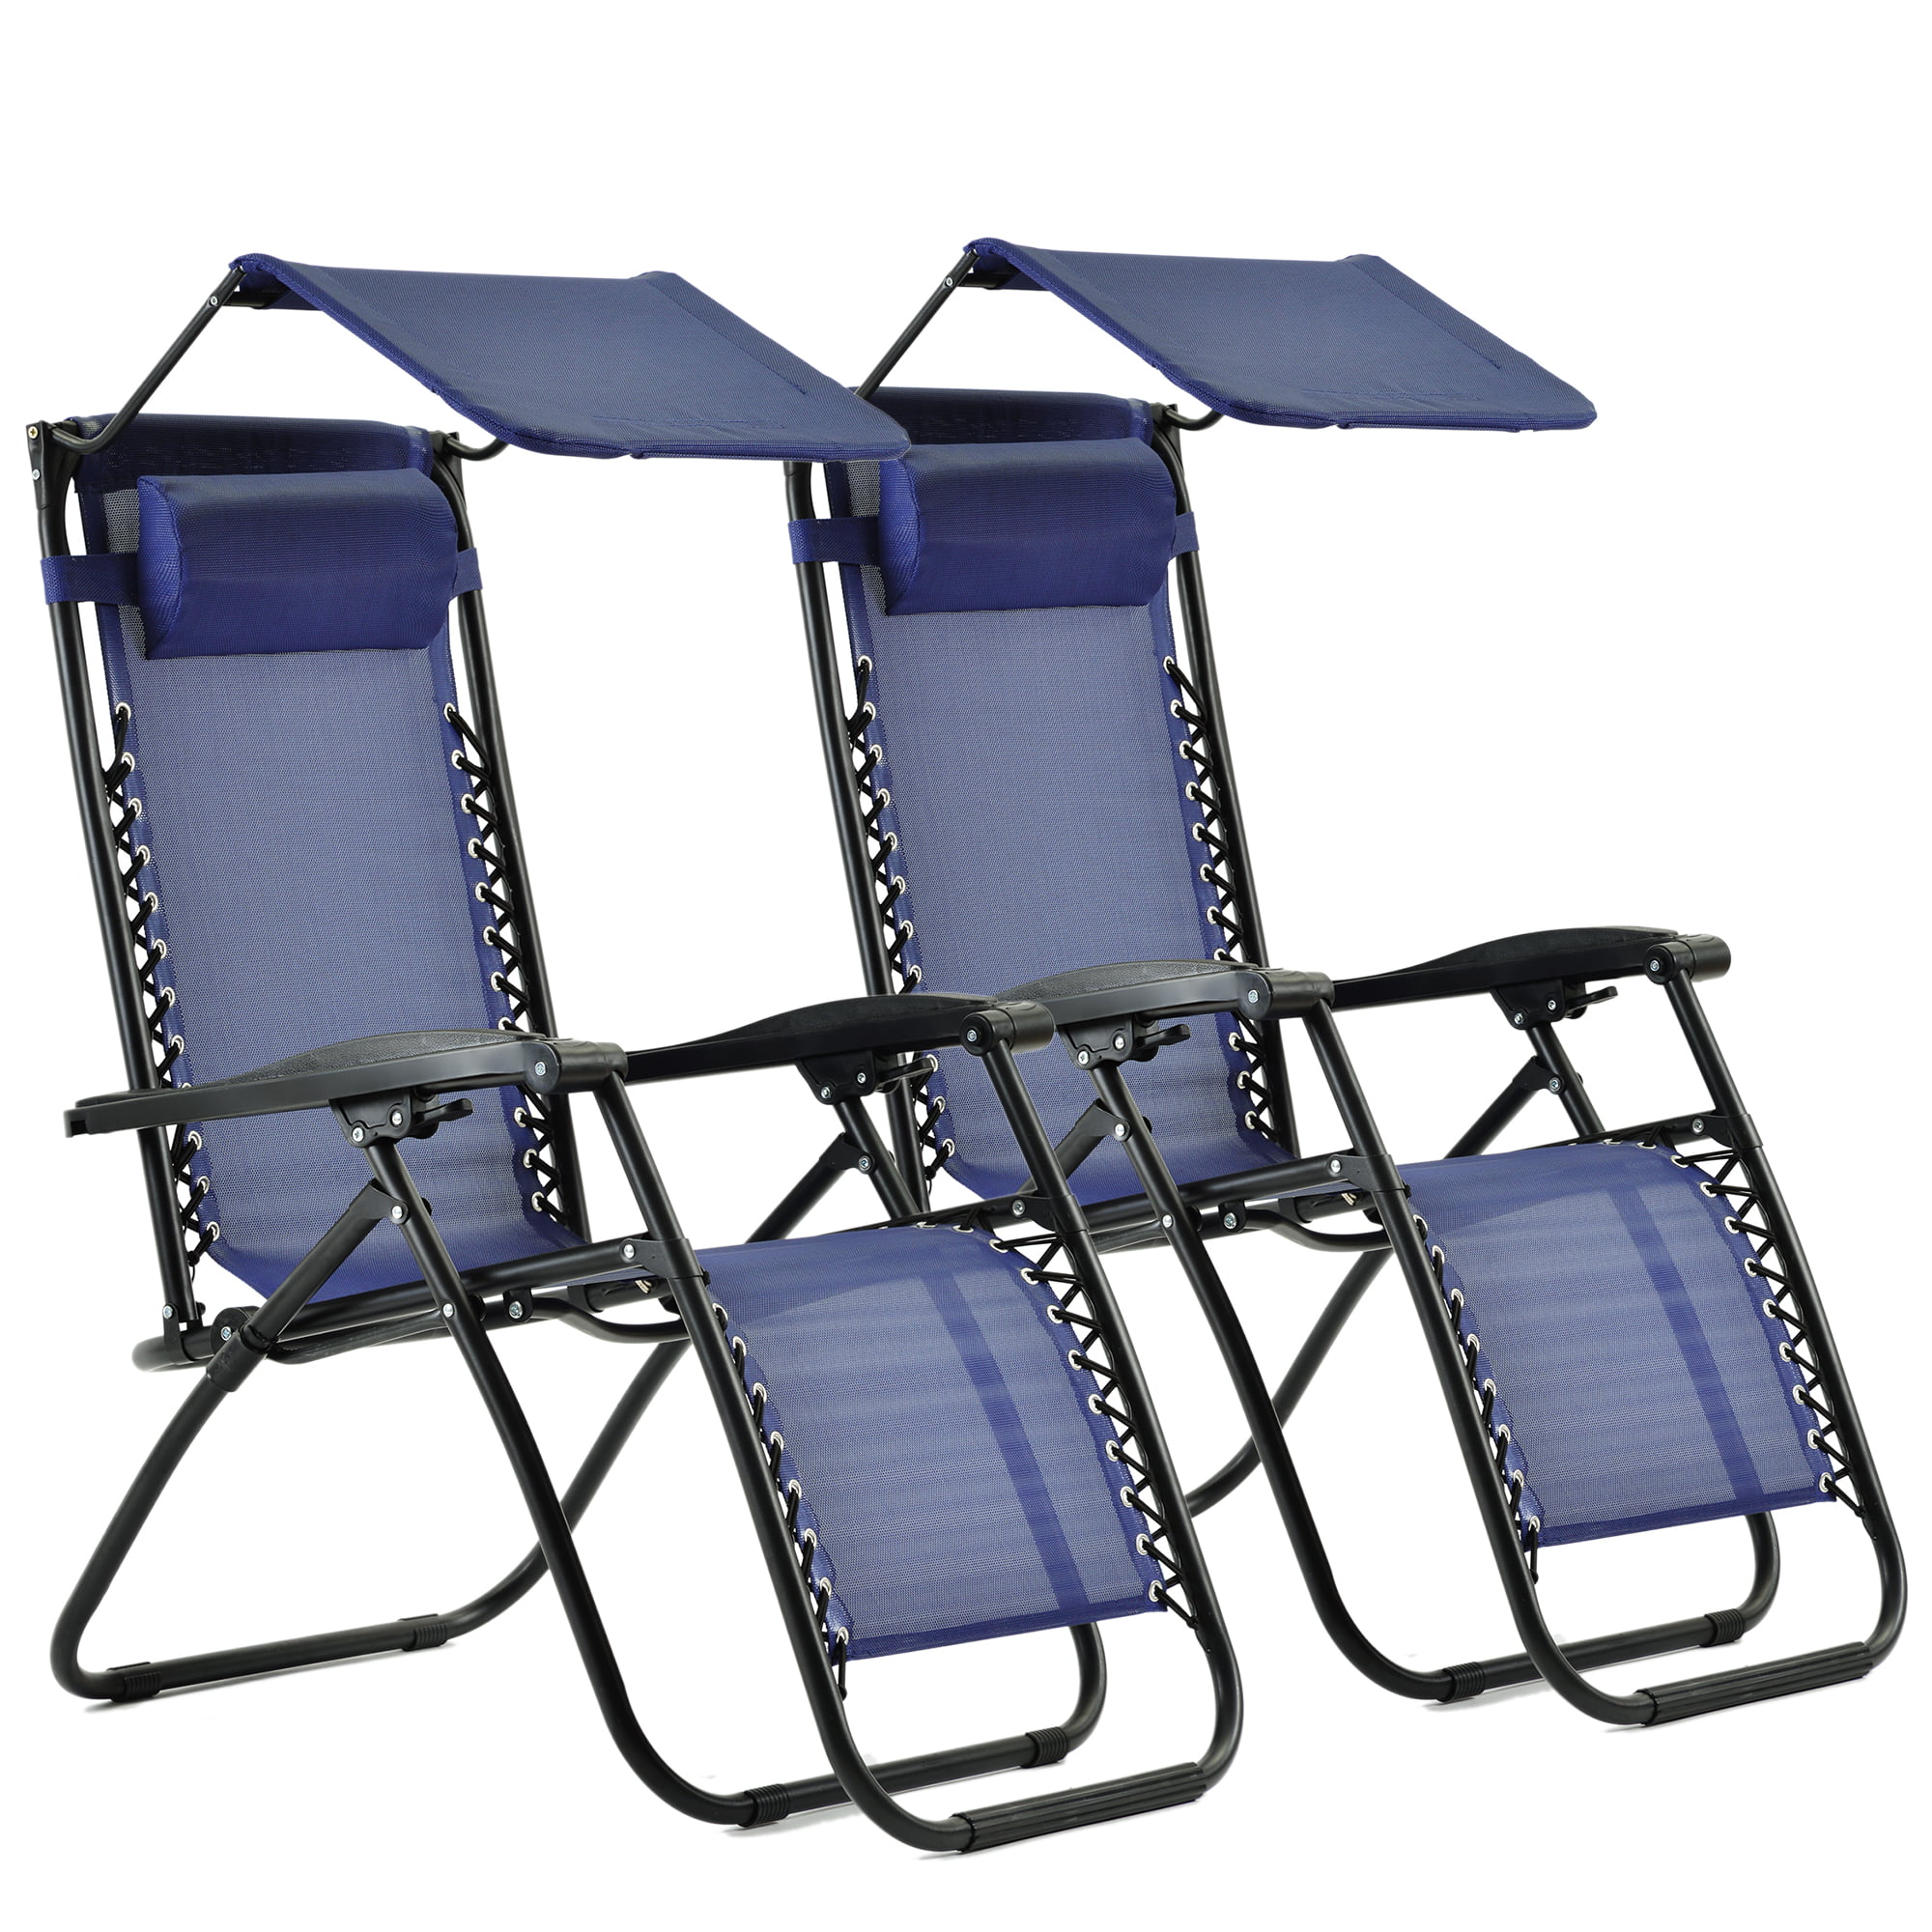 beach lounge chairs zero gravity outdoor folding patio chairs with canopy shade adjustable patio reclining chairs with pillow for beach patio